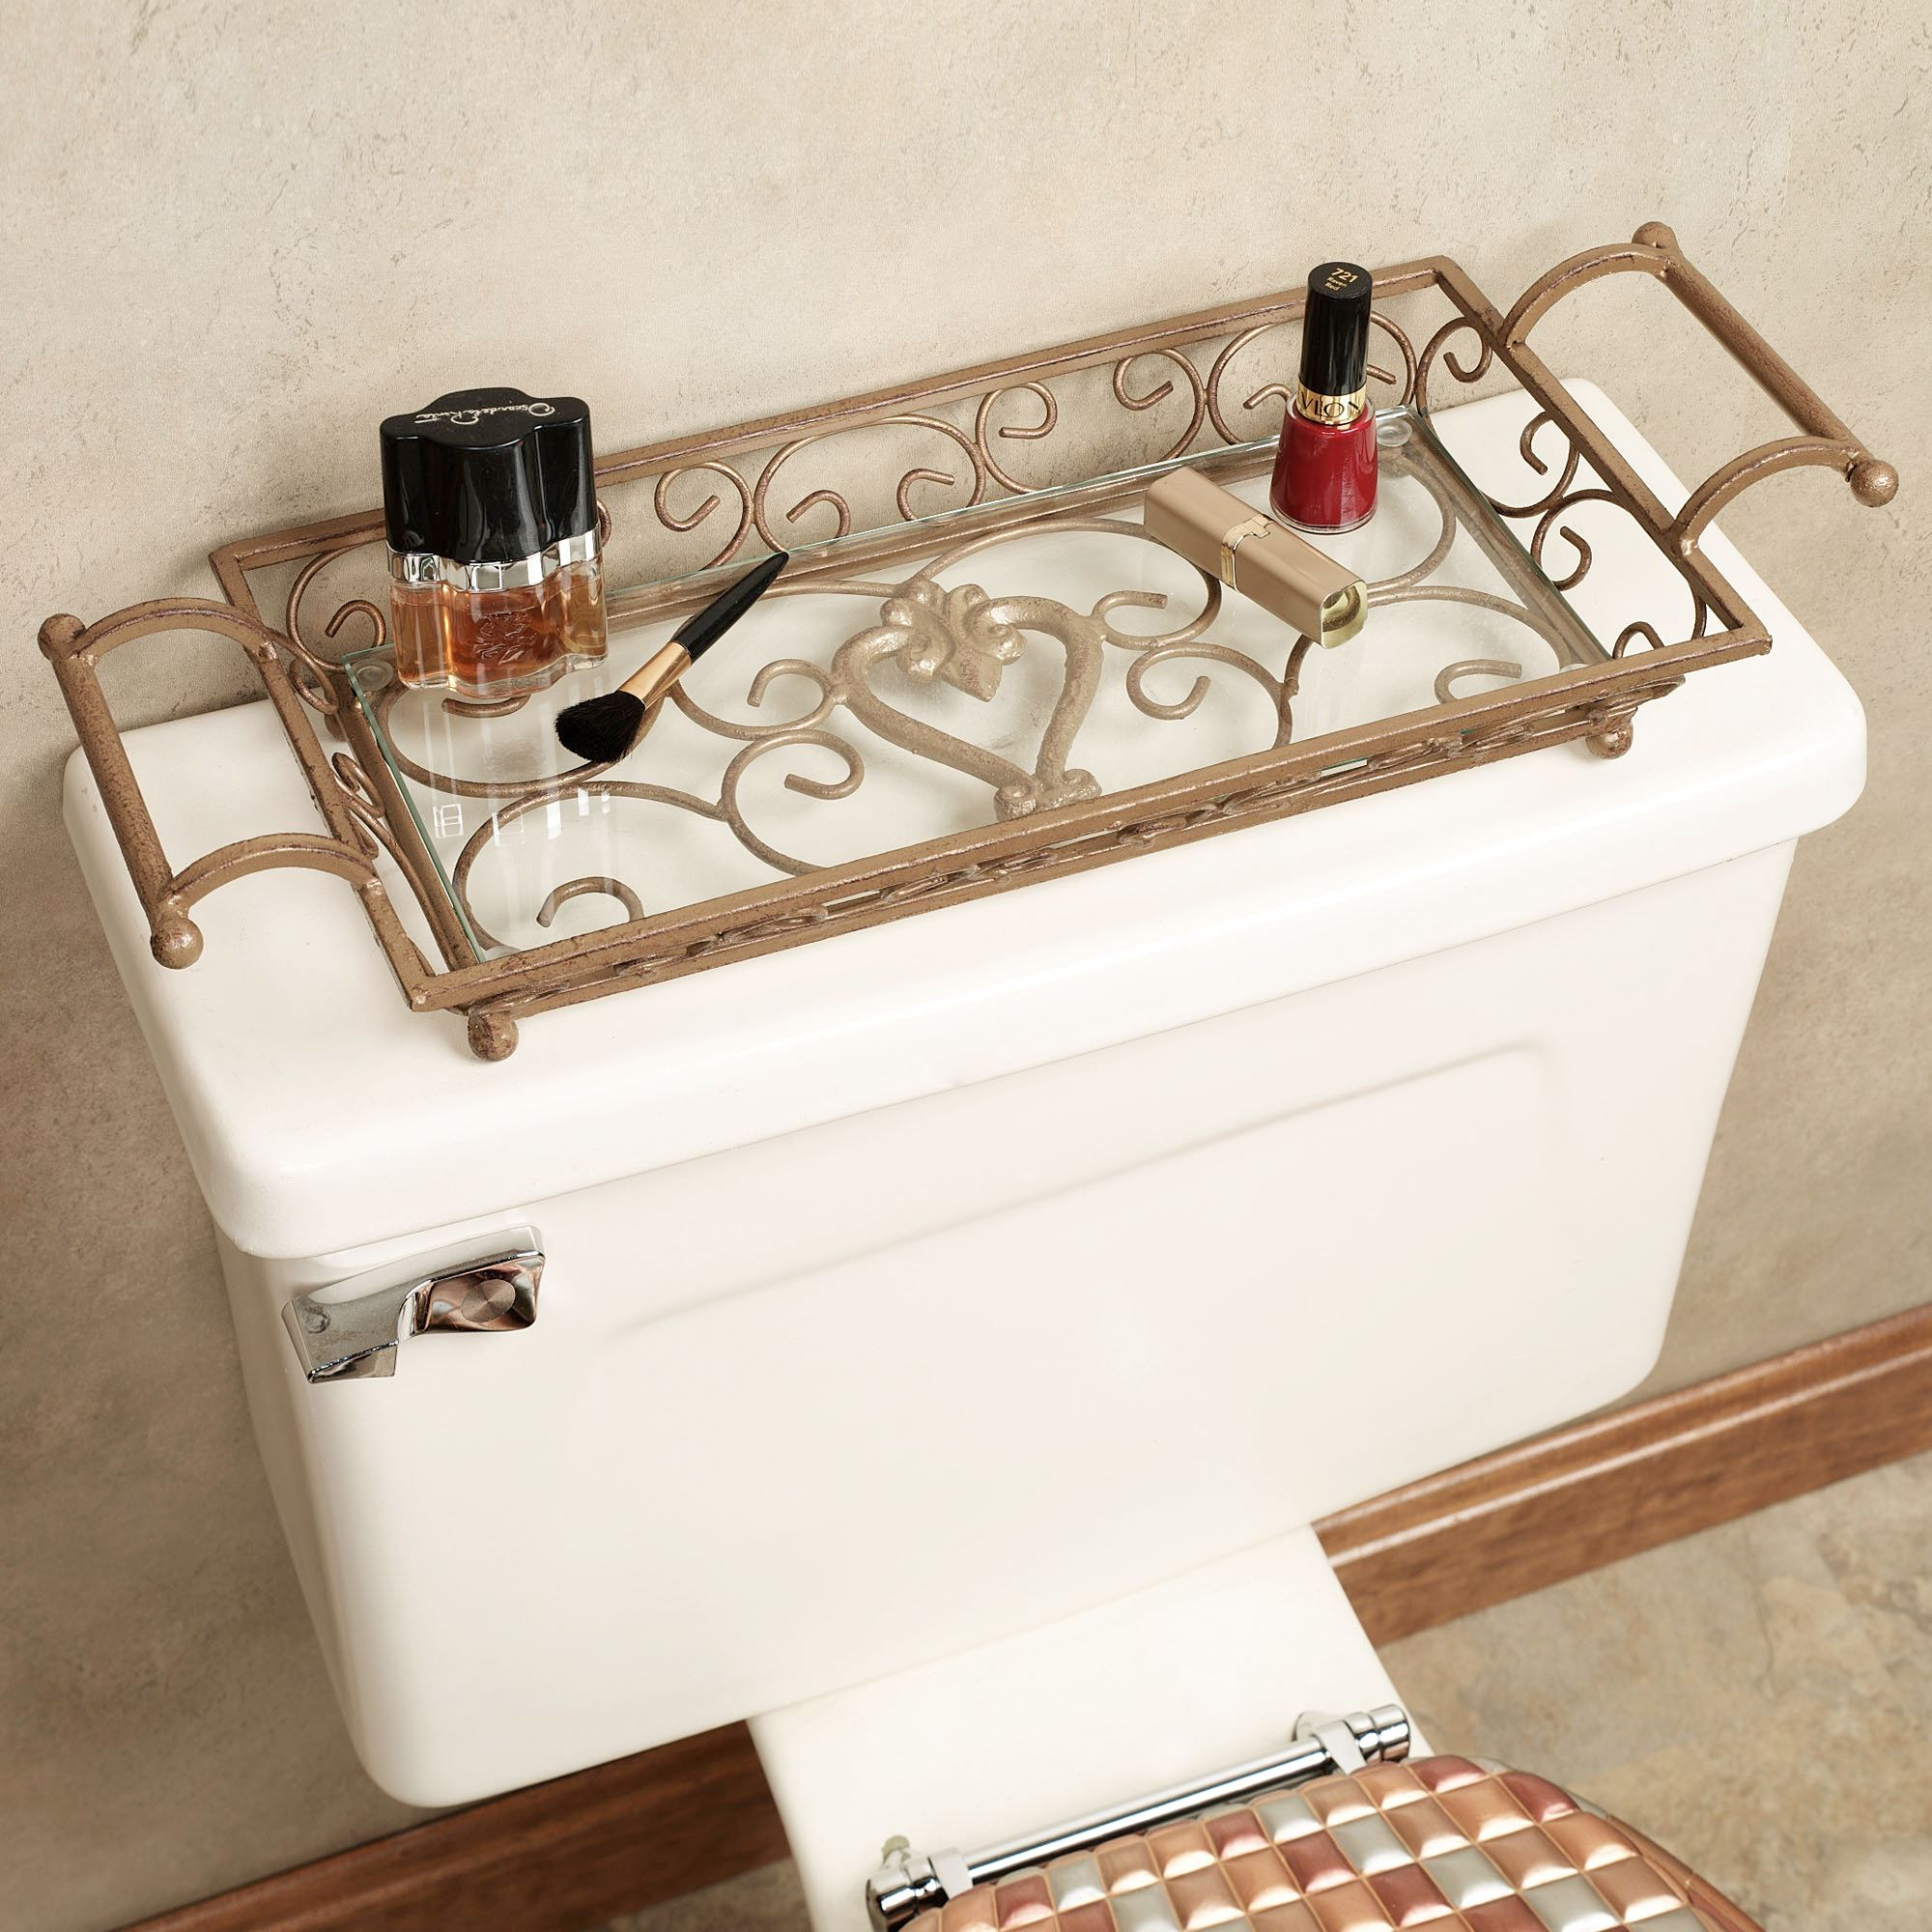 Aldabella Satin Gold Vanity Tray With Handles